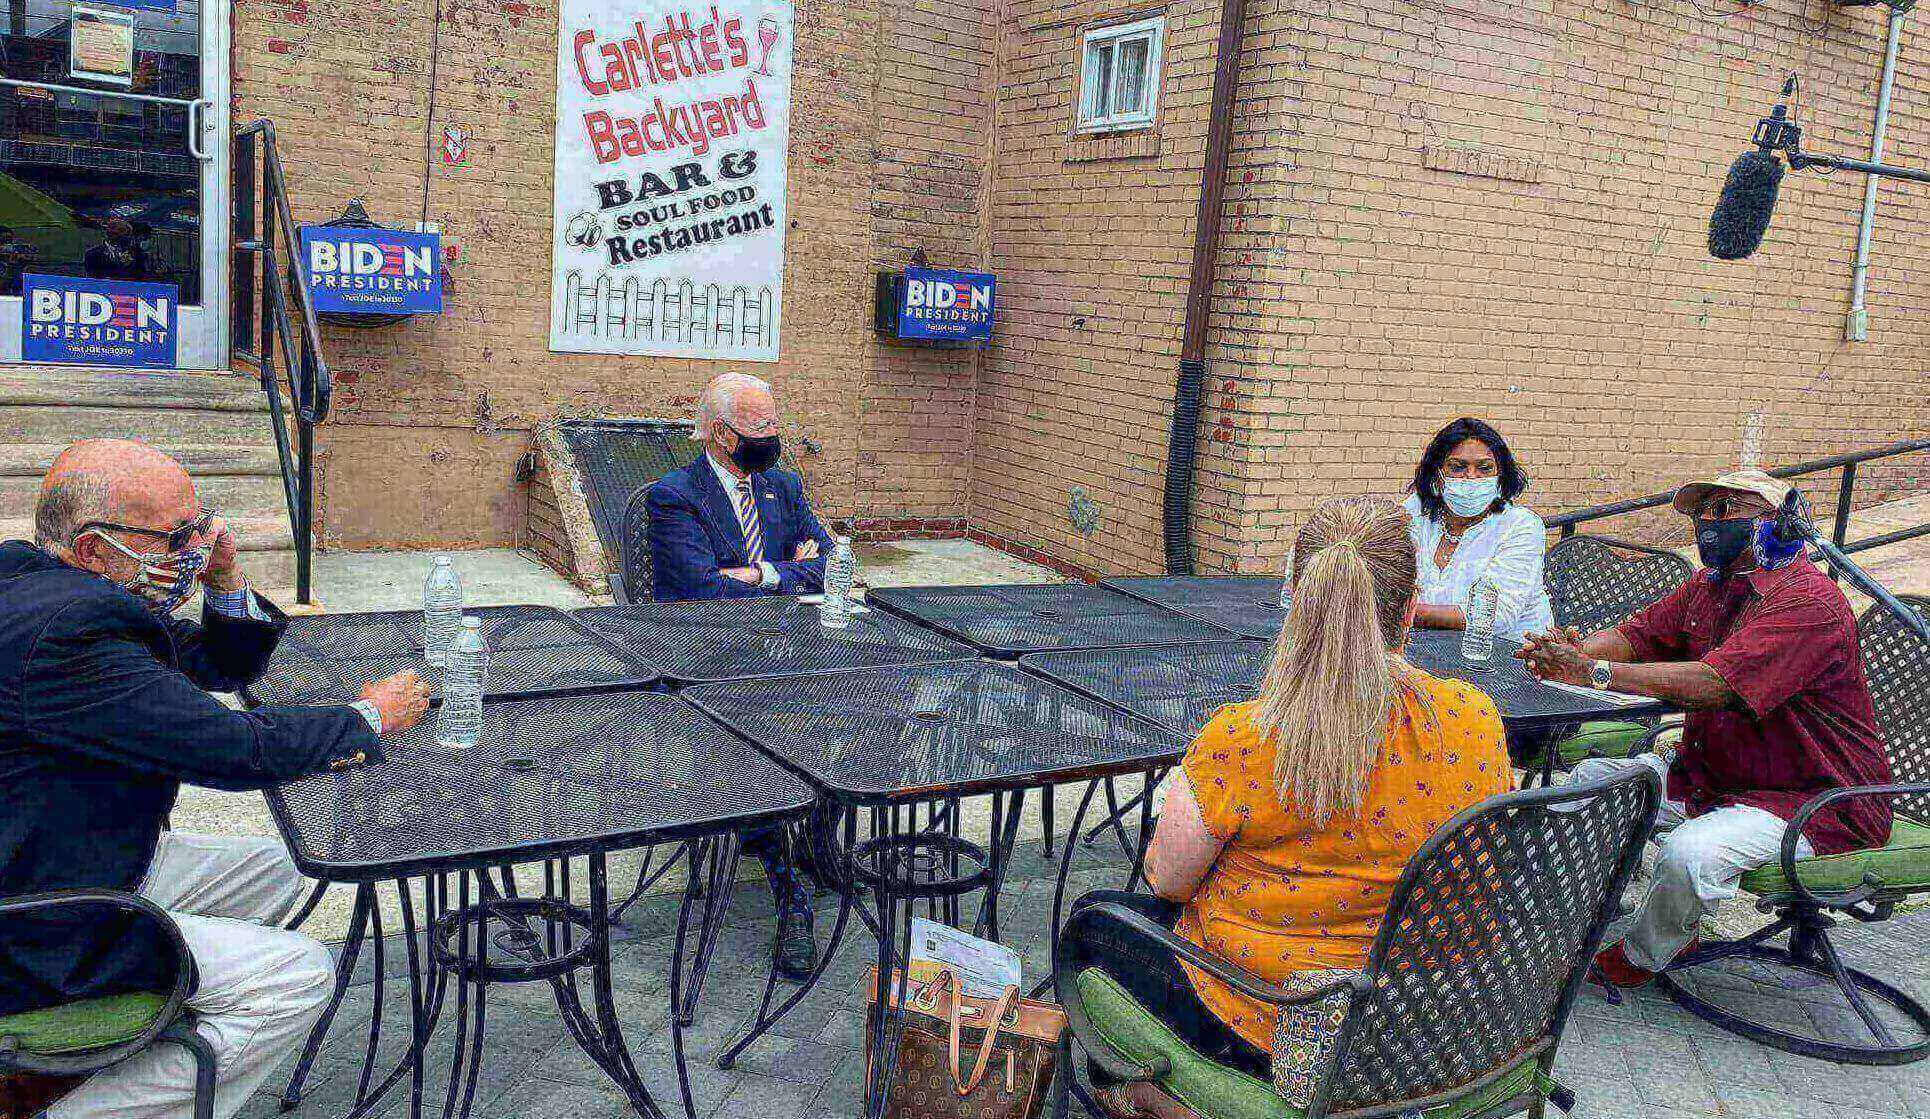 Joe Biden Got Down to Business in His Visit to Yeadon and Darby Wednesday